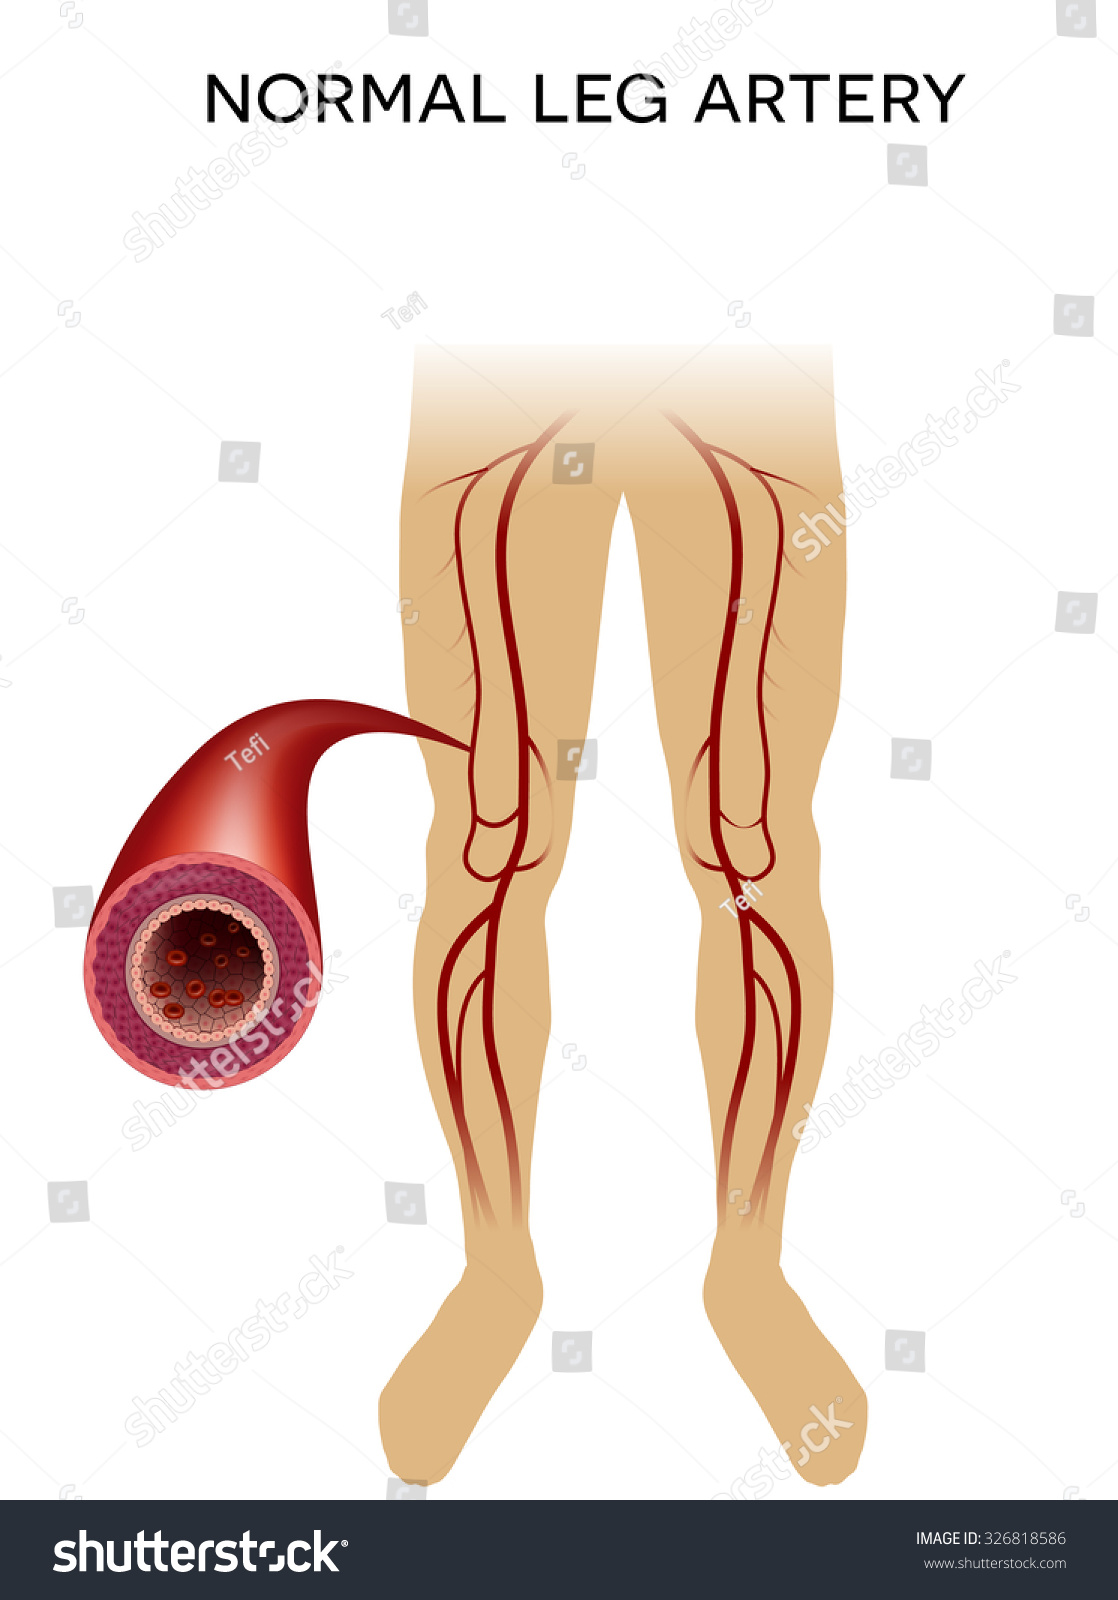 Healthy Leg Artery On White Background Stock Vector 326818586 ...